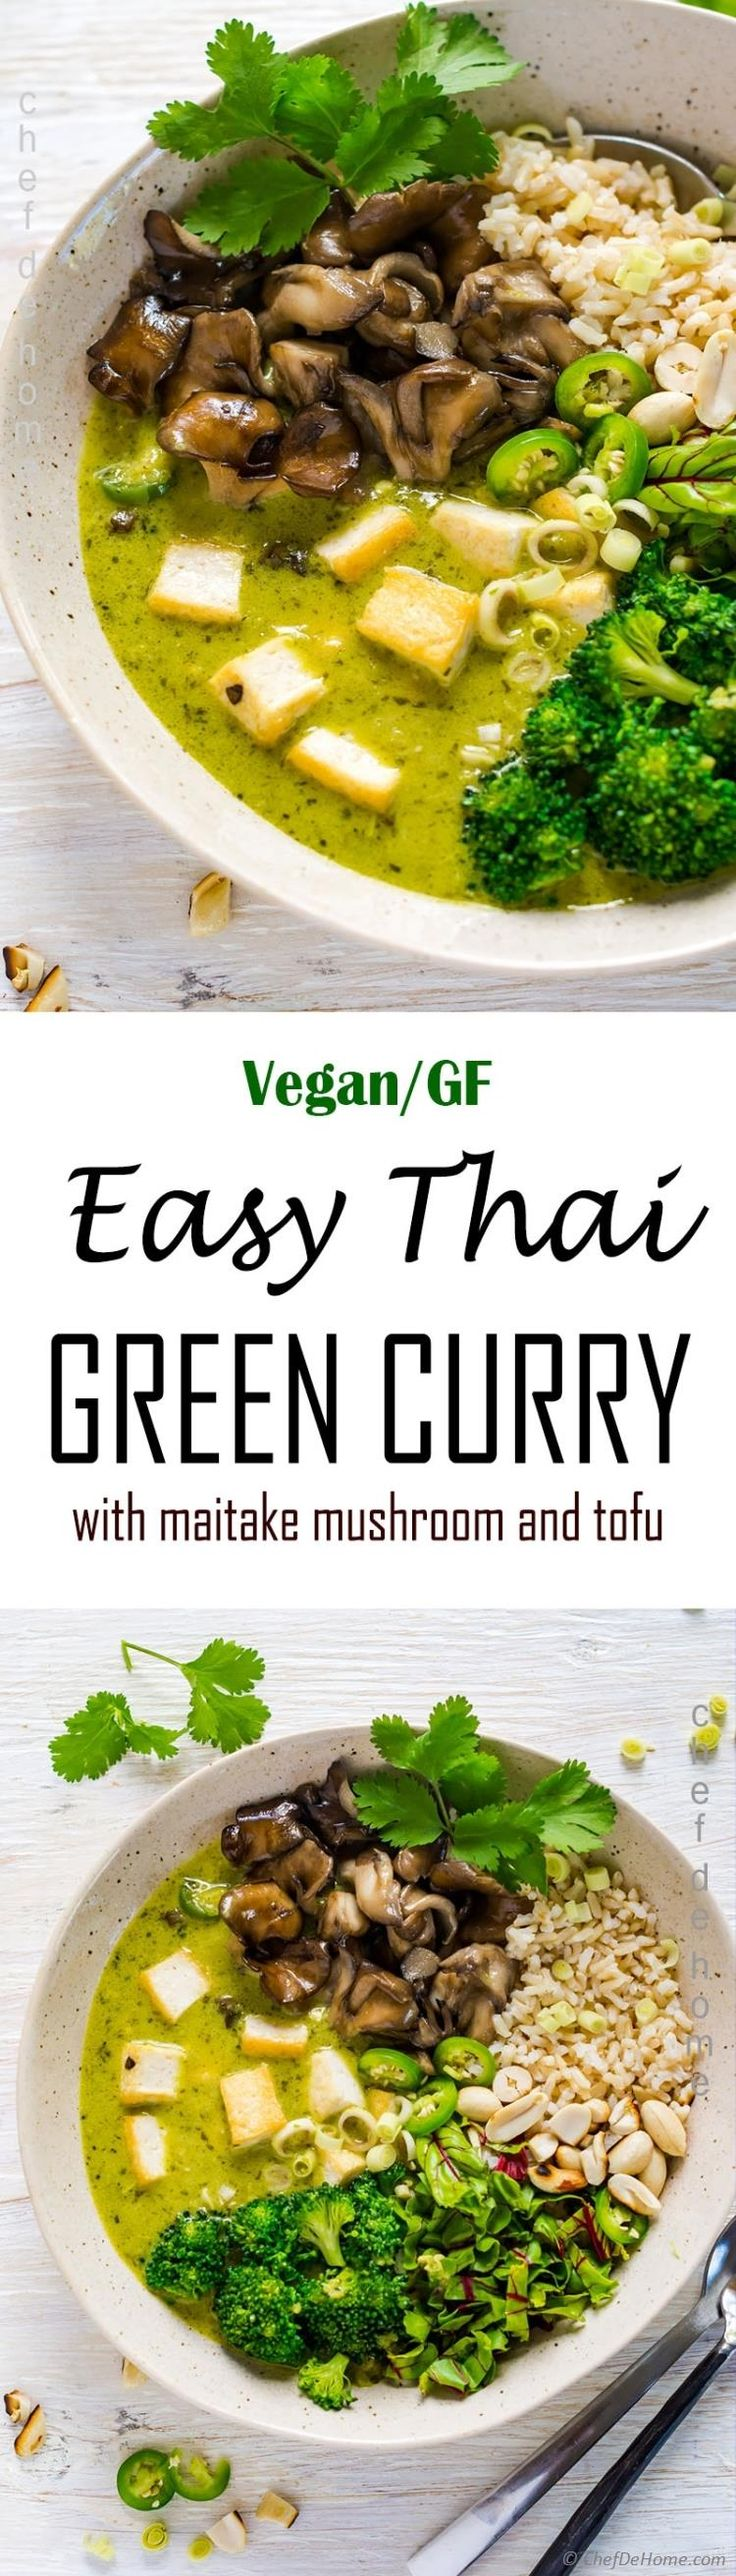 Recipe for Easy Homemade Thai Green Curry! Vegan, gluten free, and healthy curry with homemade Thai green curry paste, maitake mushrooms, broccoli and crispy tofu.